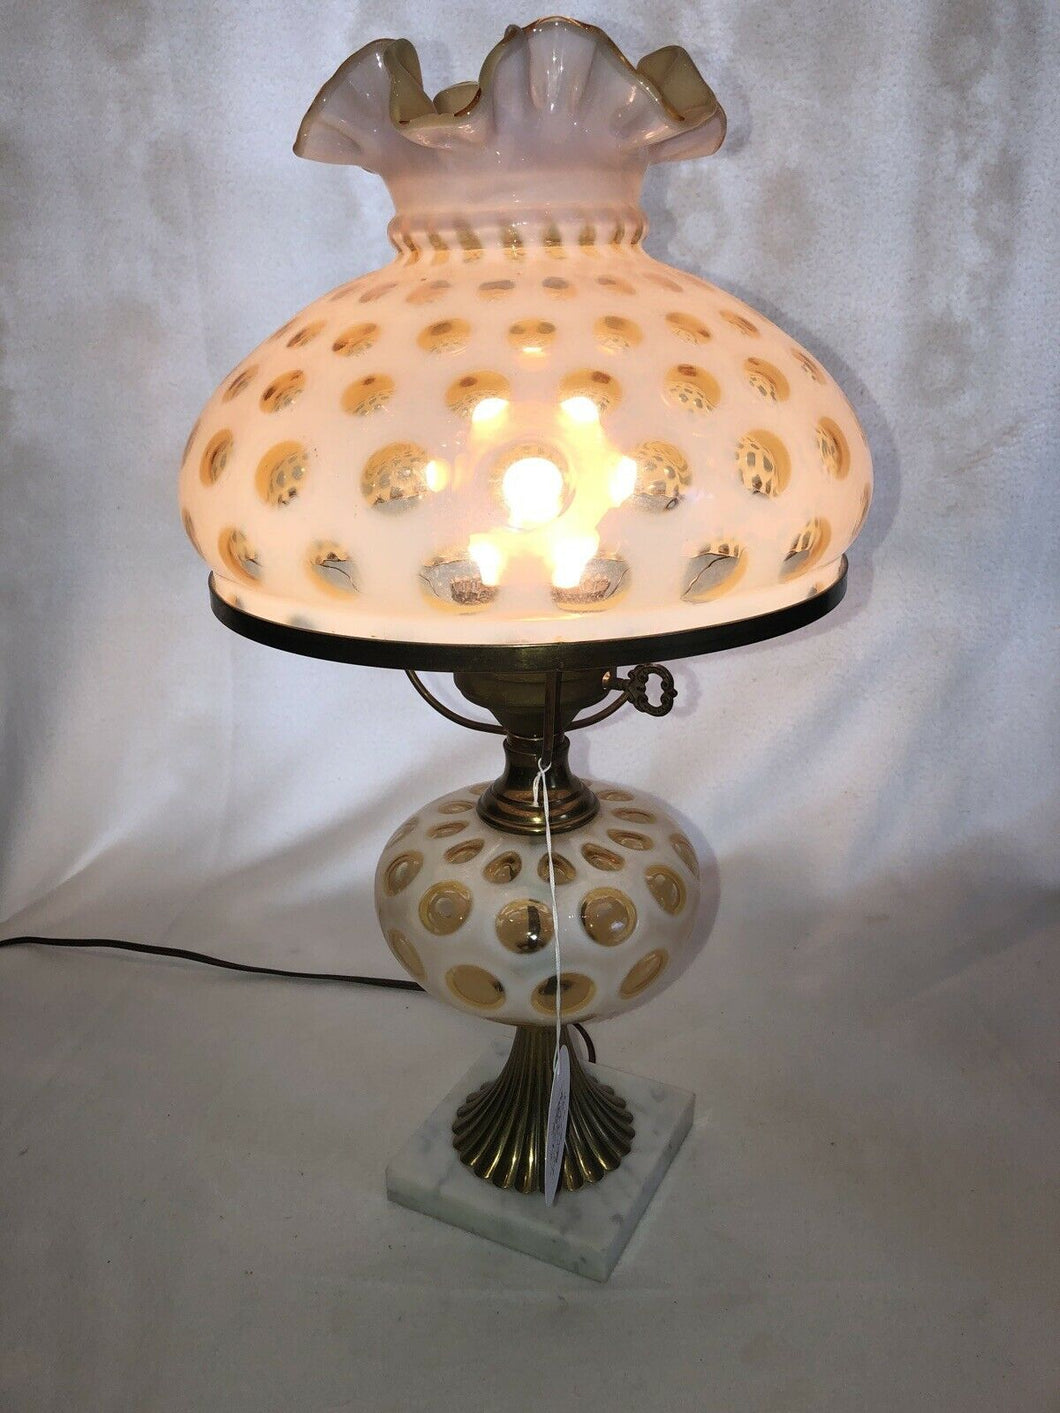 Impressive Fenton Art Glass French Opalescent Coin Dot Parlor Boudoir Lamp 20""